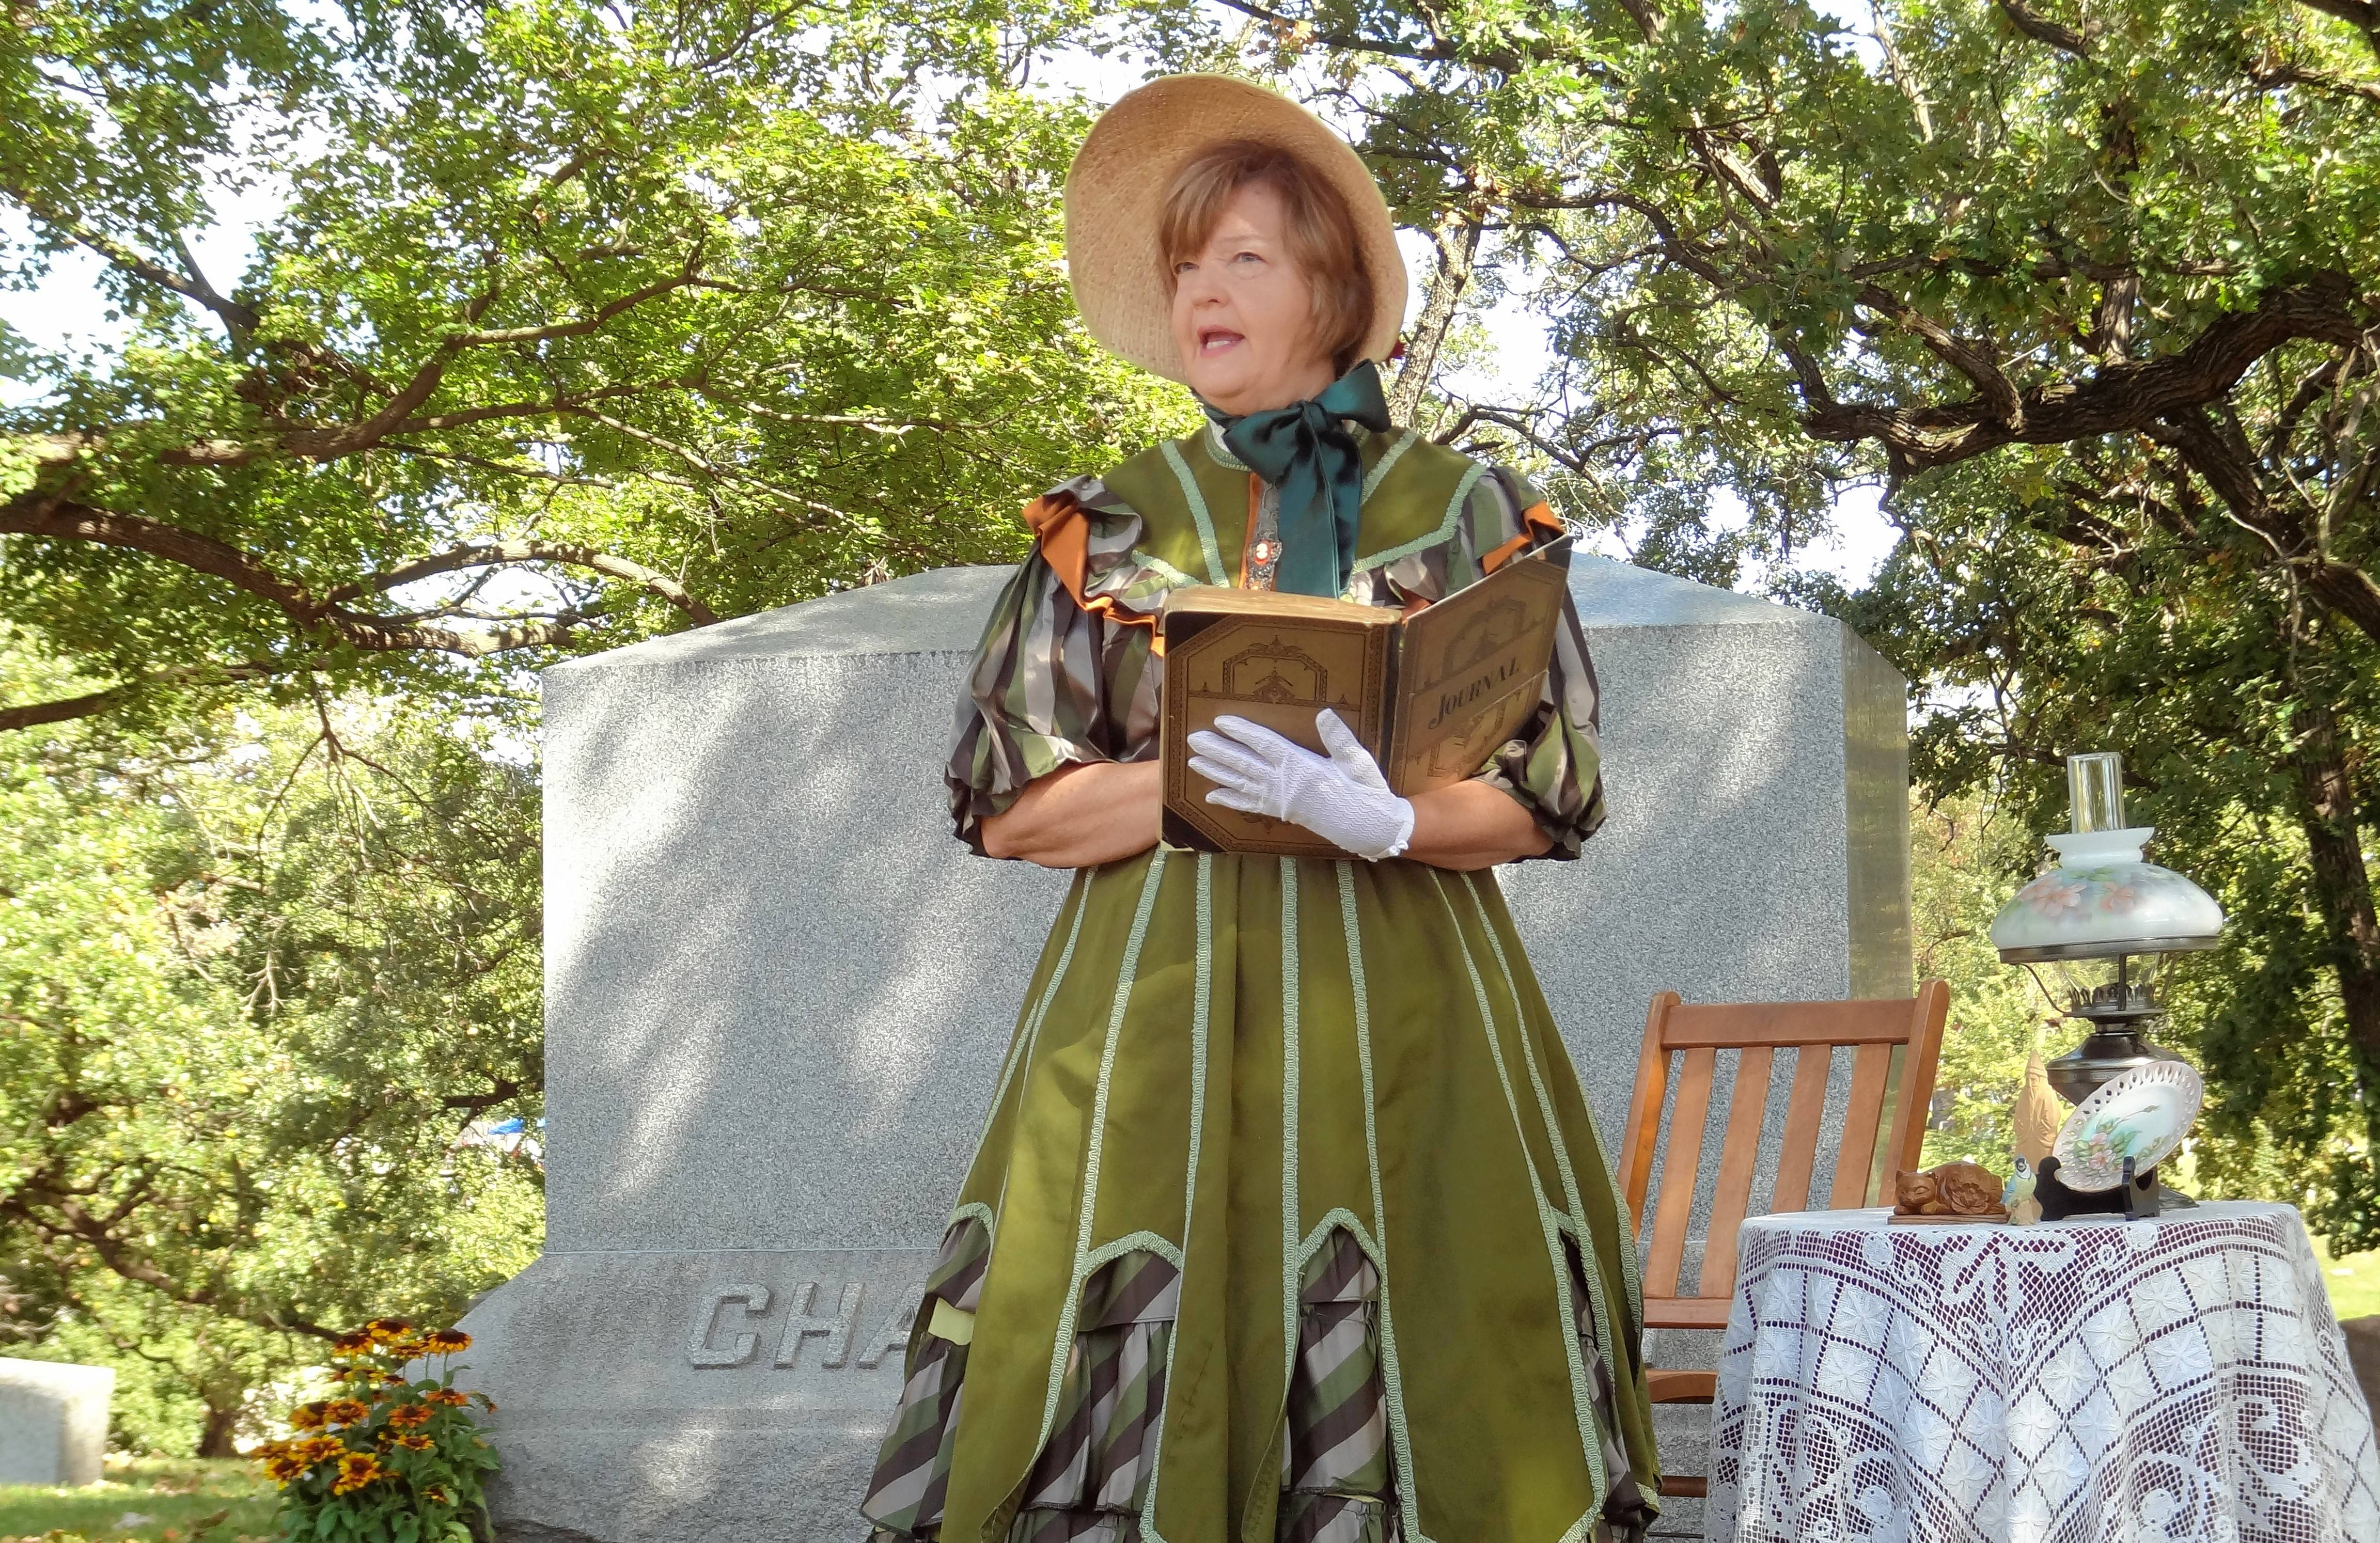 Beth Hudson plays Emeline Church Borden at an Elgin Cemetery Walk several years ago. Borden was an Elgin resident who married dairy magnate Gail Borden, The 30th annual Elgin Cemetery Walk takes place Sunday, Sept. 24 at Bluff City Cemetery.